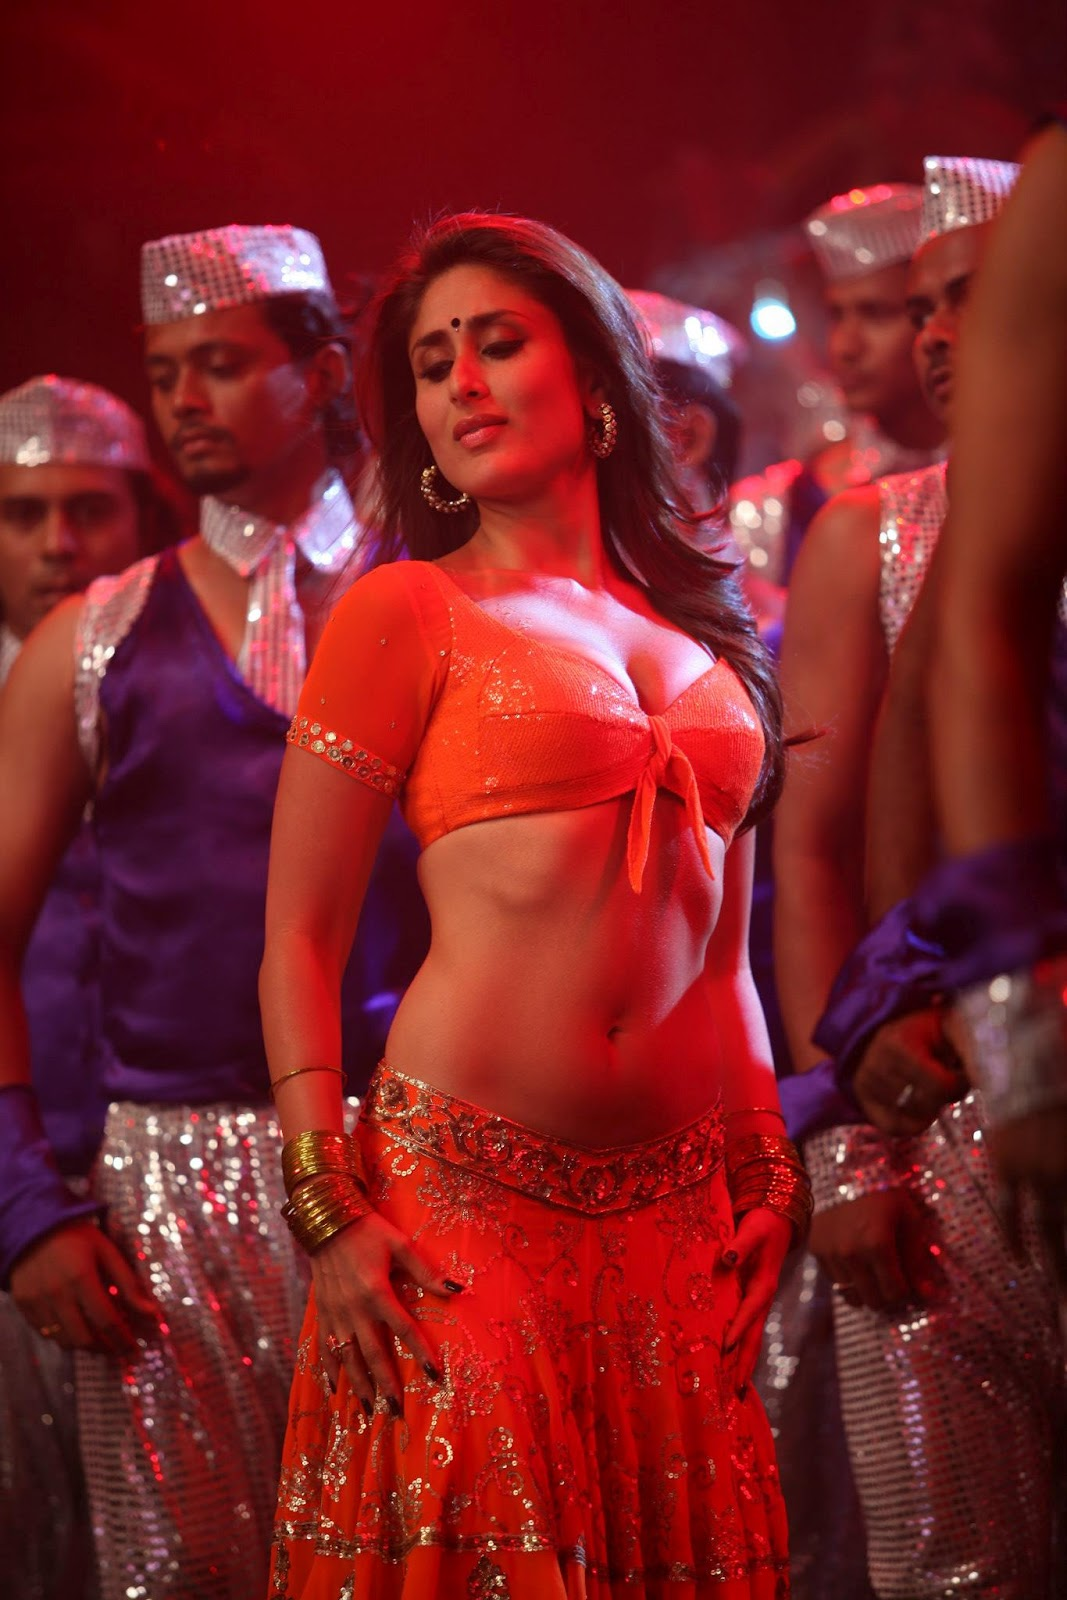 Kareena Kapoor Sexy Stills from item song Halkta 'Halkat Jawani' In Movie 'Heroine'